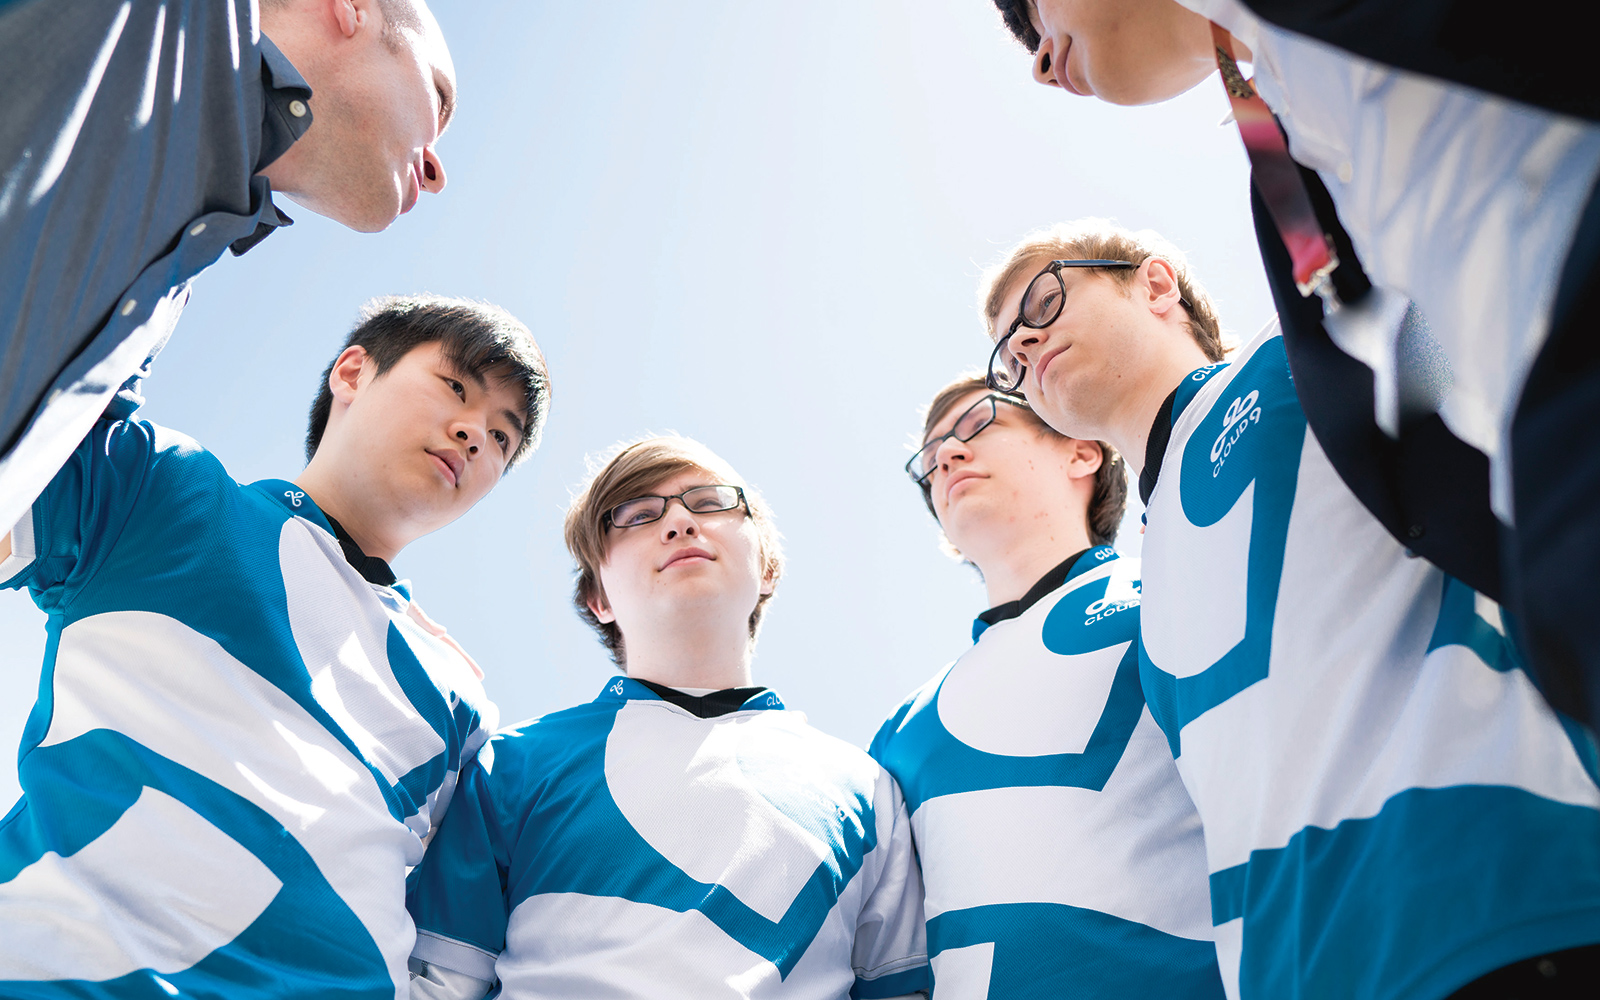 Like traditional athletes, esport professionals hit the gym, interact with coaching staff, and scrimmage other teams in preparation for major matches and tournaments.